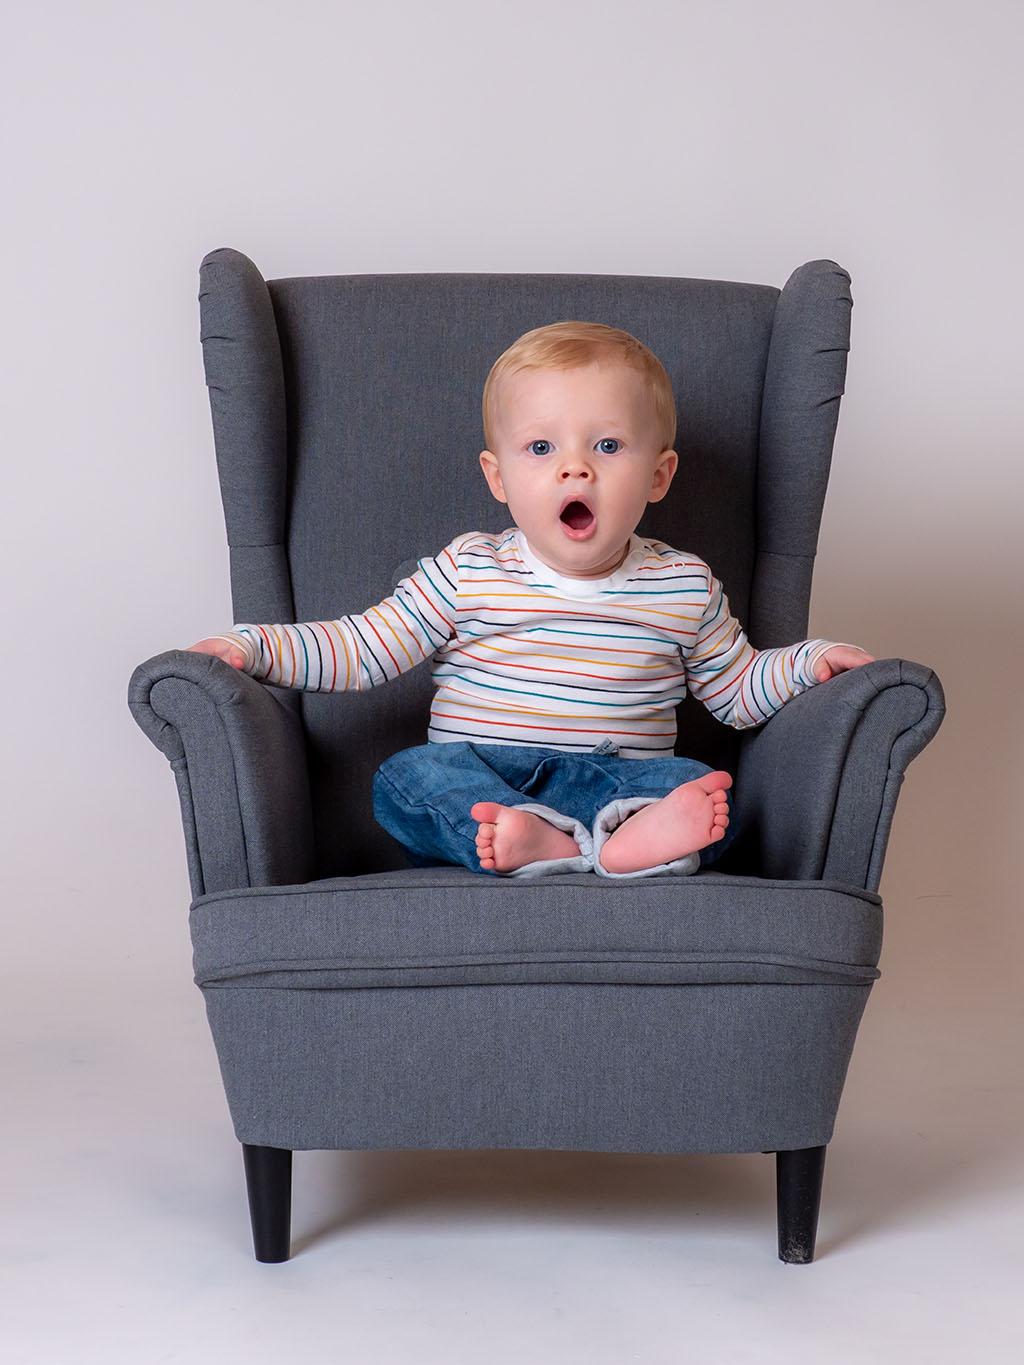 baby boy yawning while chiling in the armchair taken by qualified baby photographer in Braintree, Essex